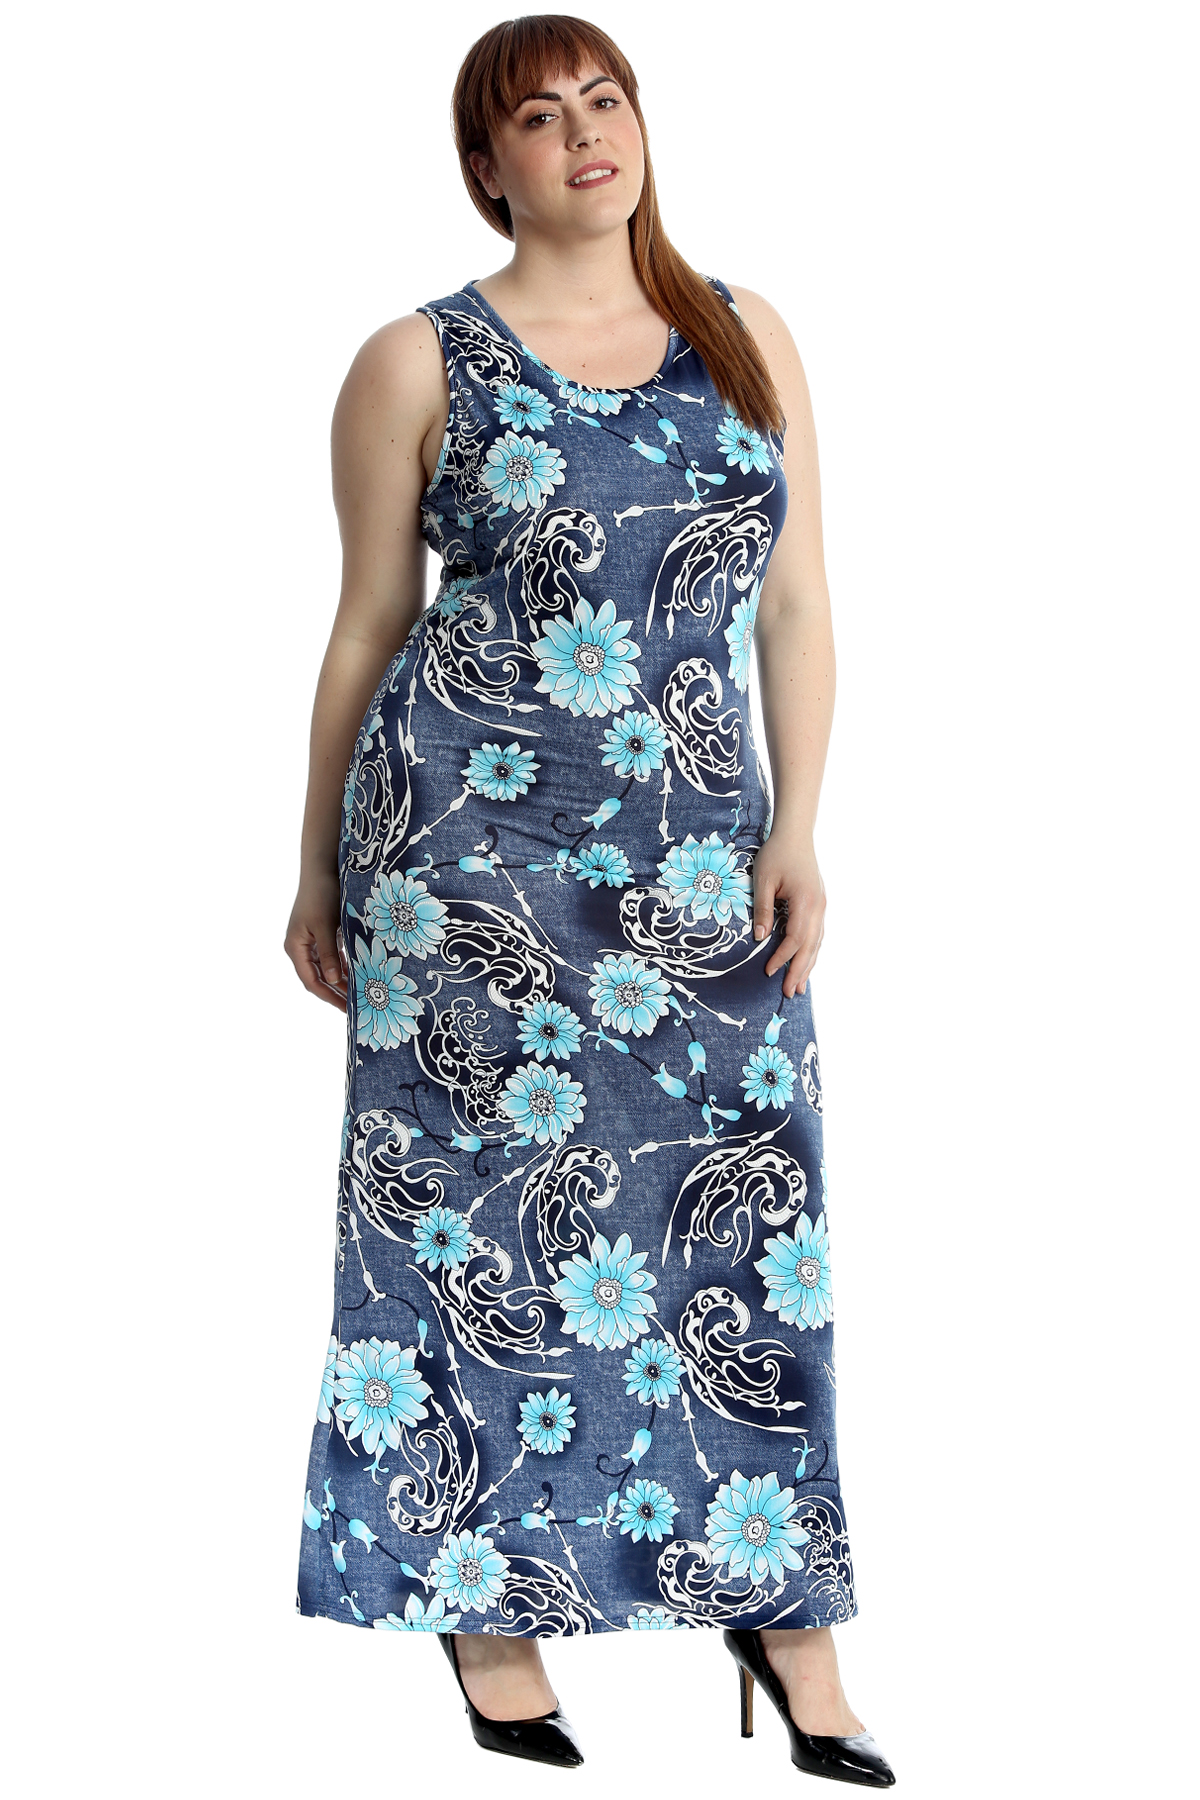 Details about New Womens Plus Size Maxi Dress Ladies Floral Print  Sleeveless Full Length Sale